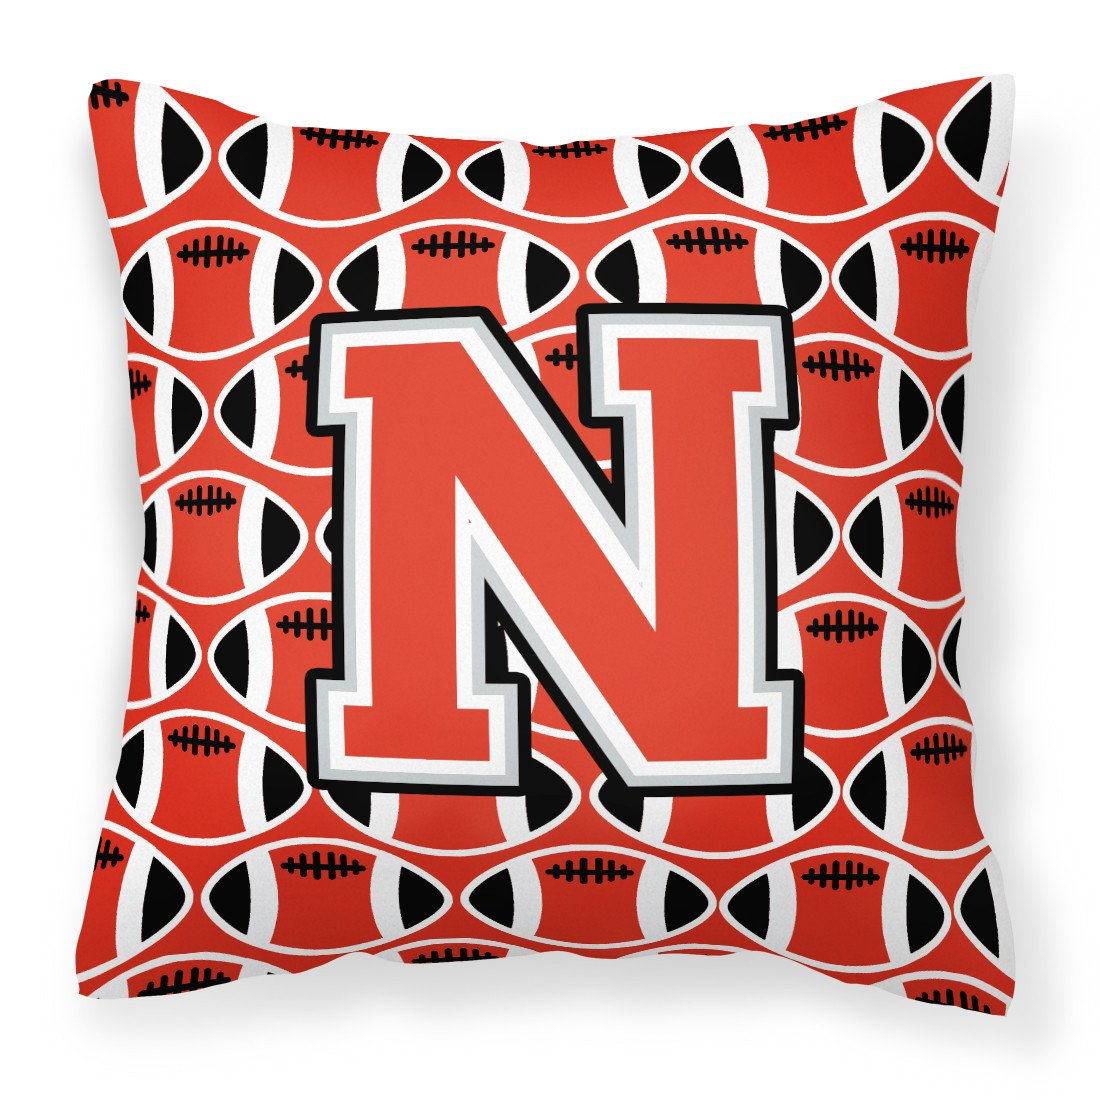 Letter N Football Scarlet and Grey Fabric Decorative Pillow CJ1067-NPW1414 by Caroline's Treasures